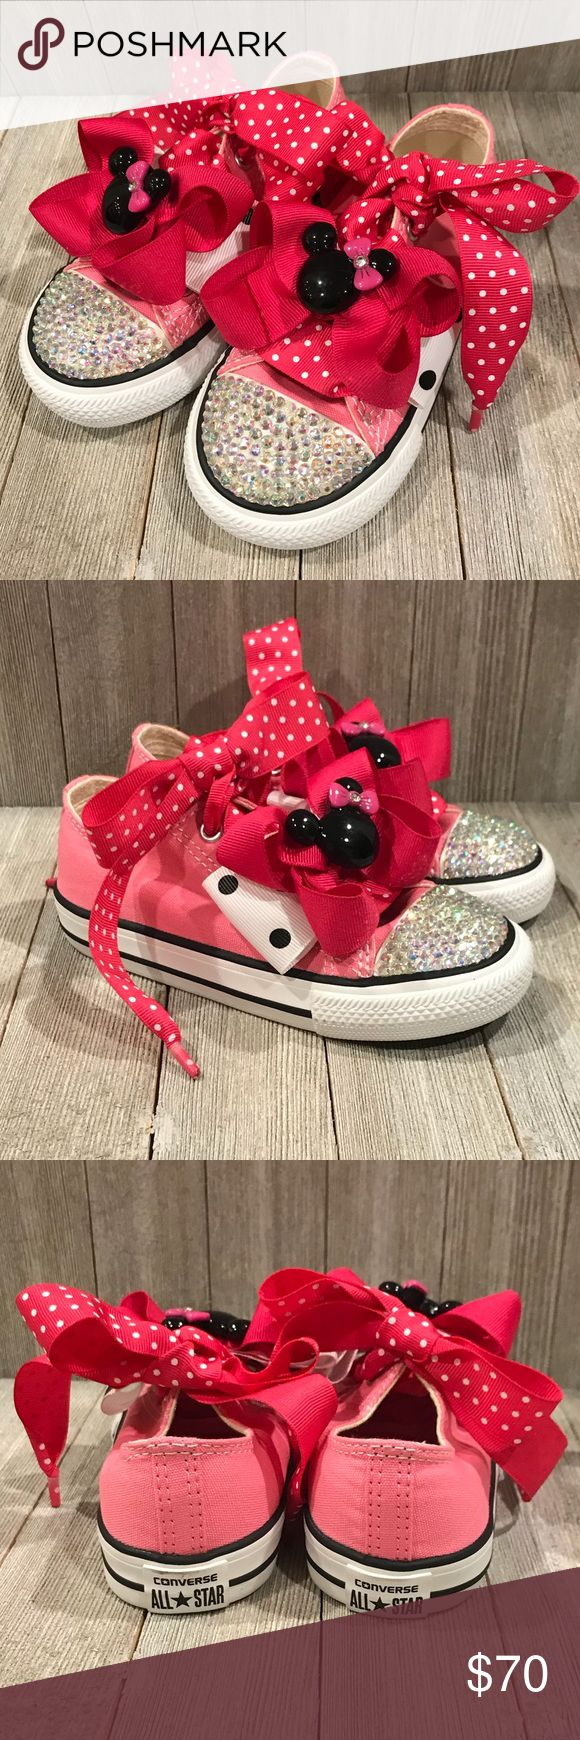 Converse All Star with Crystal Accent and Bows Brand New in Box Converse All Star with crystal accent and matching bows. Color: Bubble gum pink, white, black trim. AB crystal accent, ribbon laces, 2 bows that clipped onto the laces of each shoes (removable), and matching hair bow. Comes with original white laces. Shoes have not even been tried on....so they have never been worn. I purchased to use for a birthday and they were too big and got thrown in the back of a closet. Now too close to…